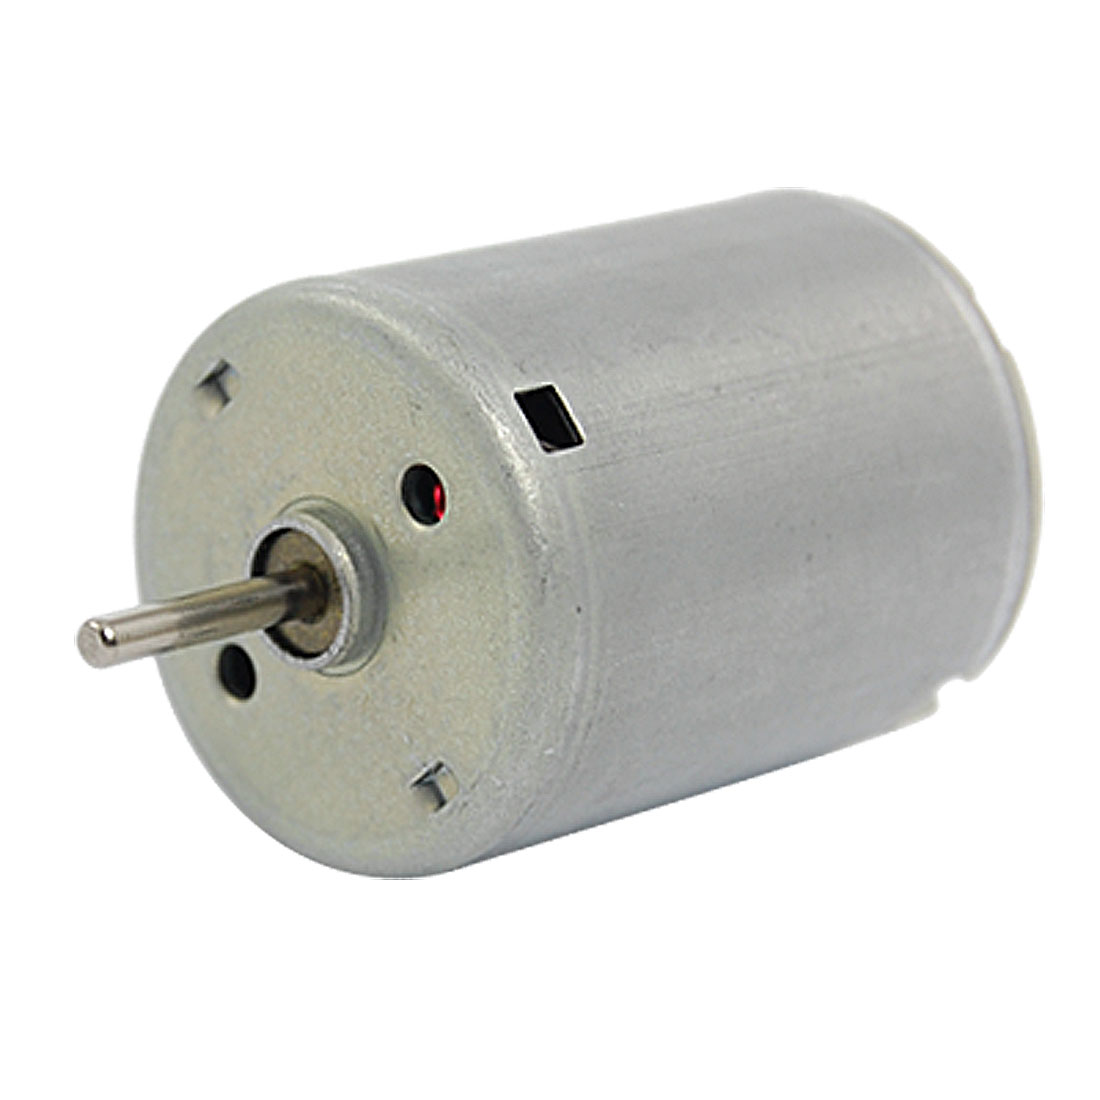 DC-12V-13000RPM-0-12A-2mm-Shaft-Mini-Motor-for-Electric-DIY-Toys